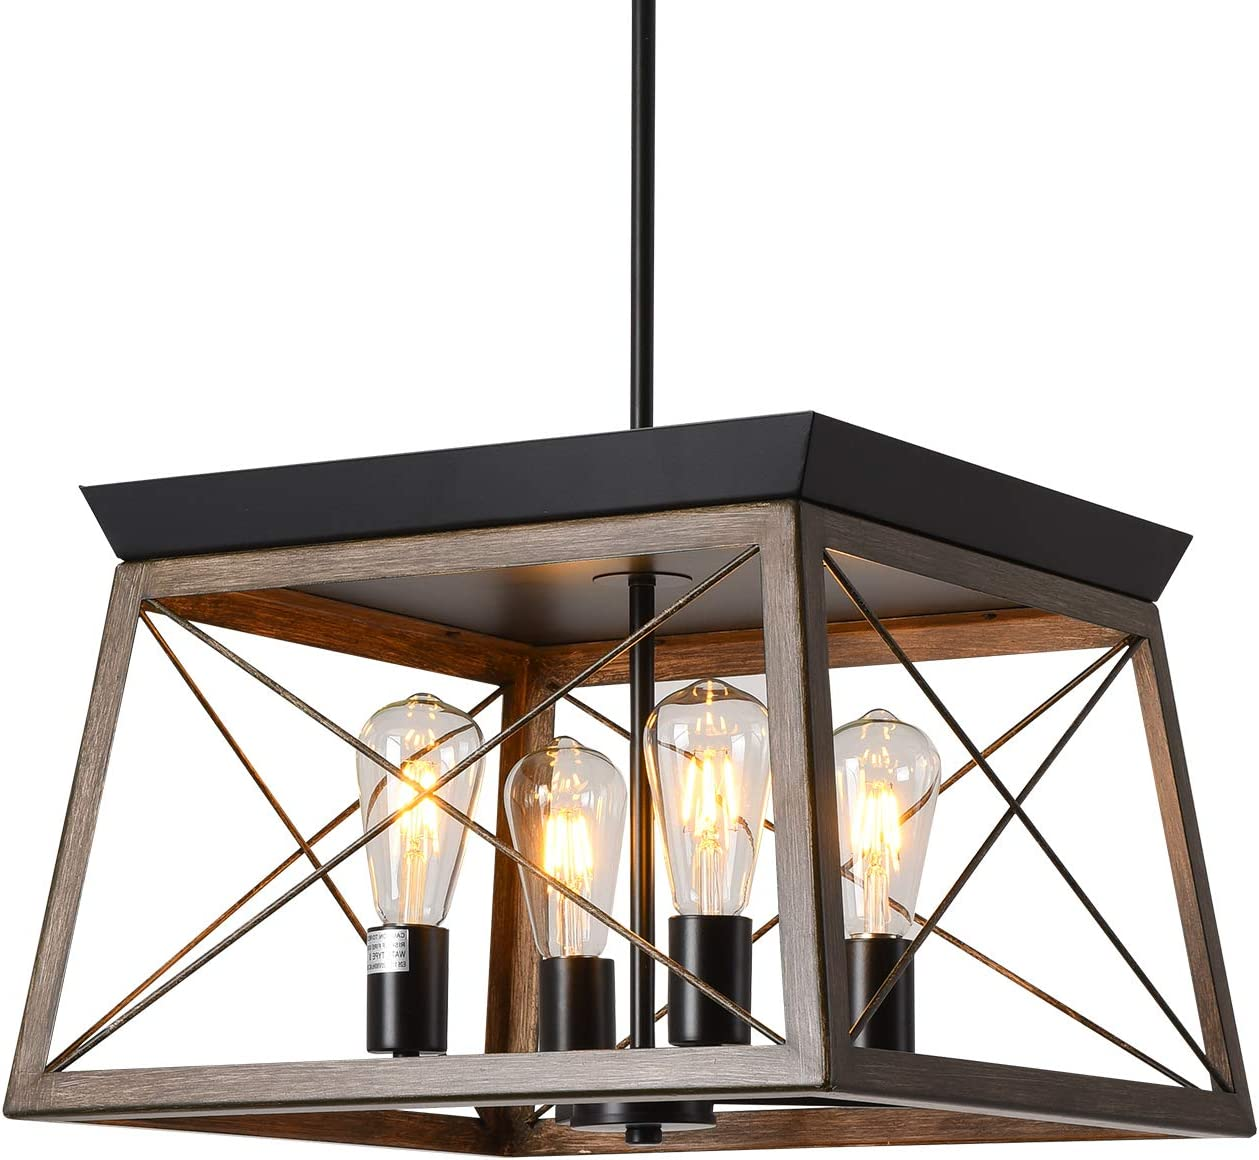 PUSU Kitchen Island Light Fixture Farmhouse Style 1-Light Open-Caged with Hand Make Brown Wooden Grain Finish